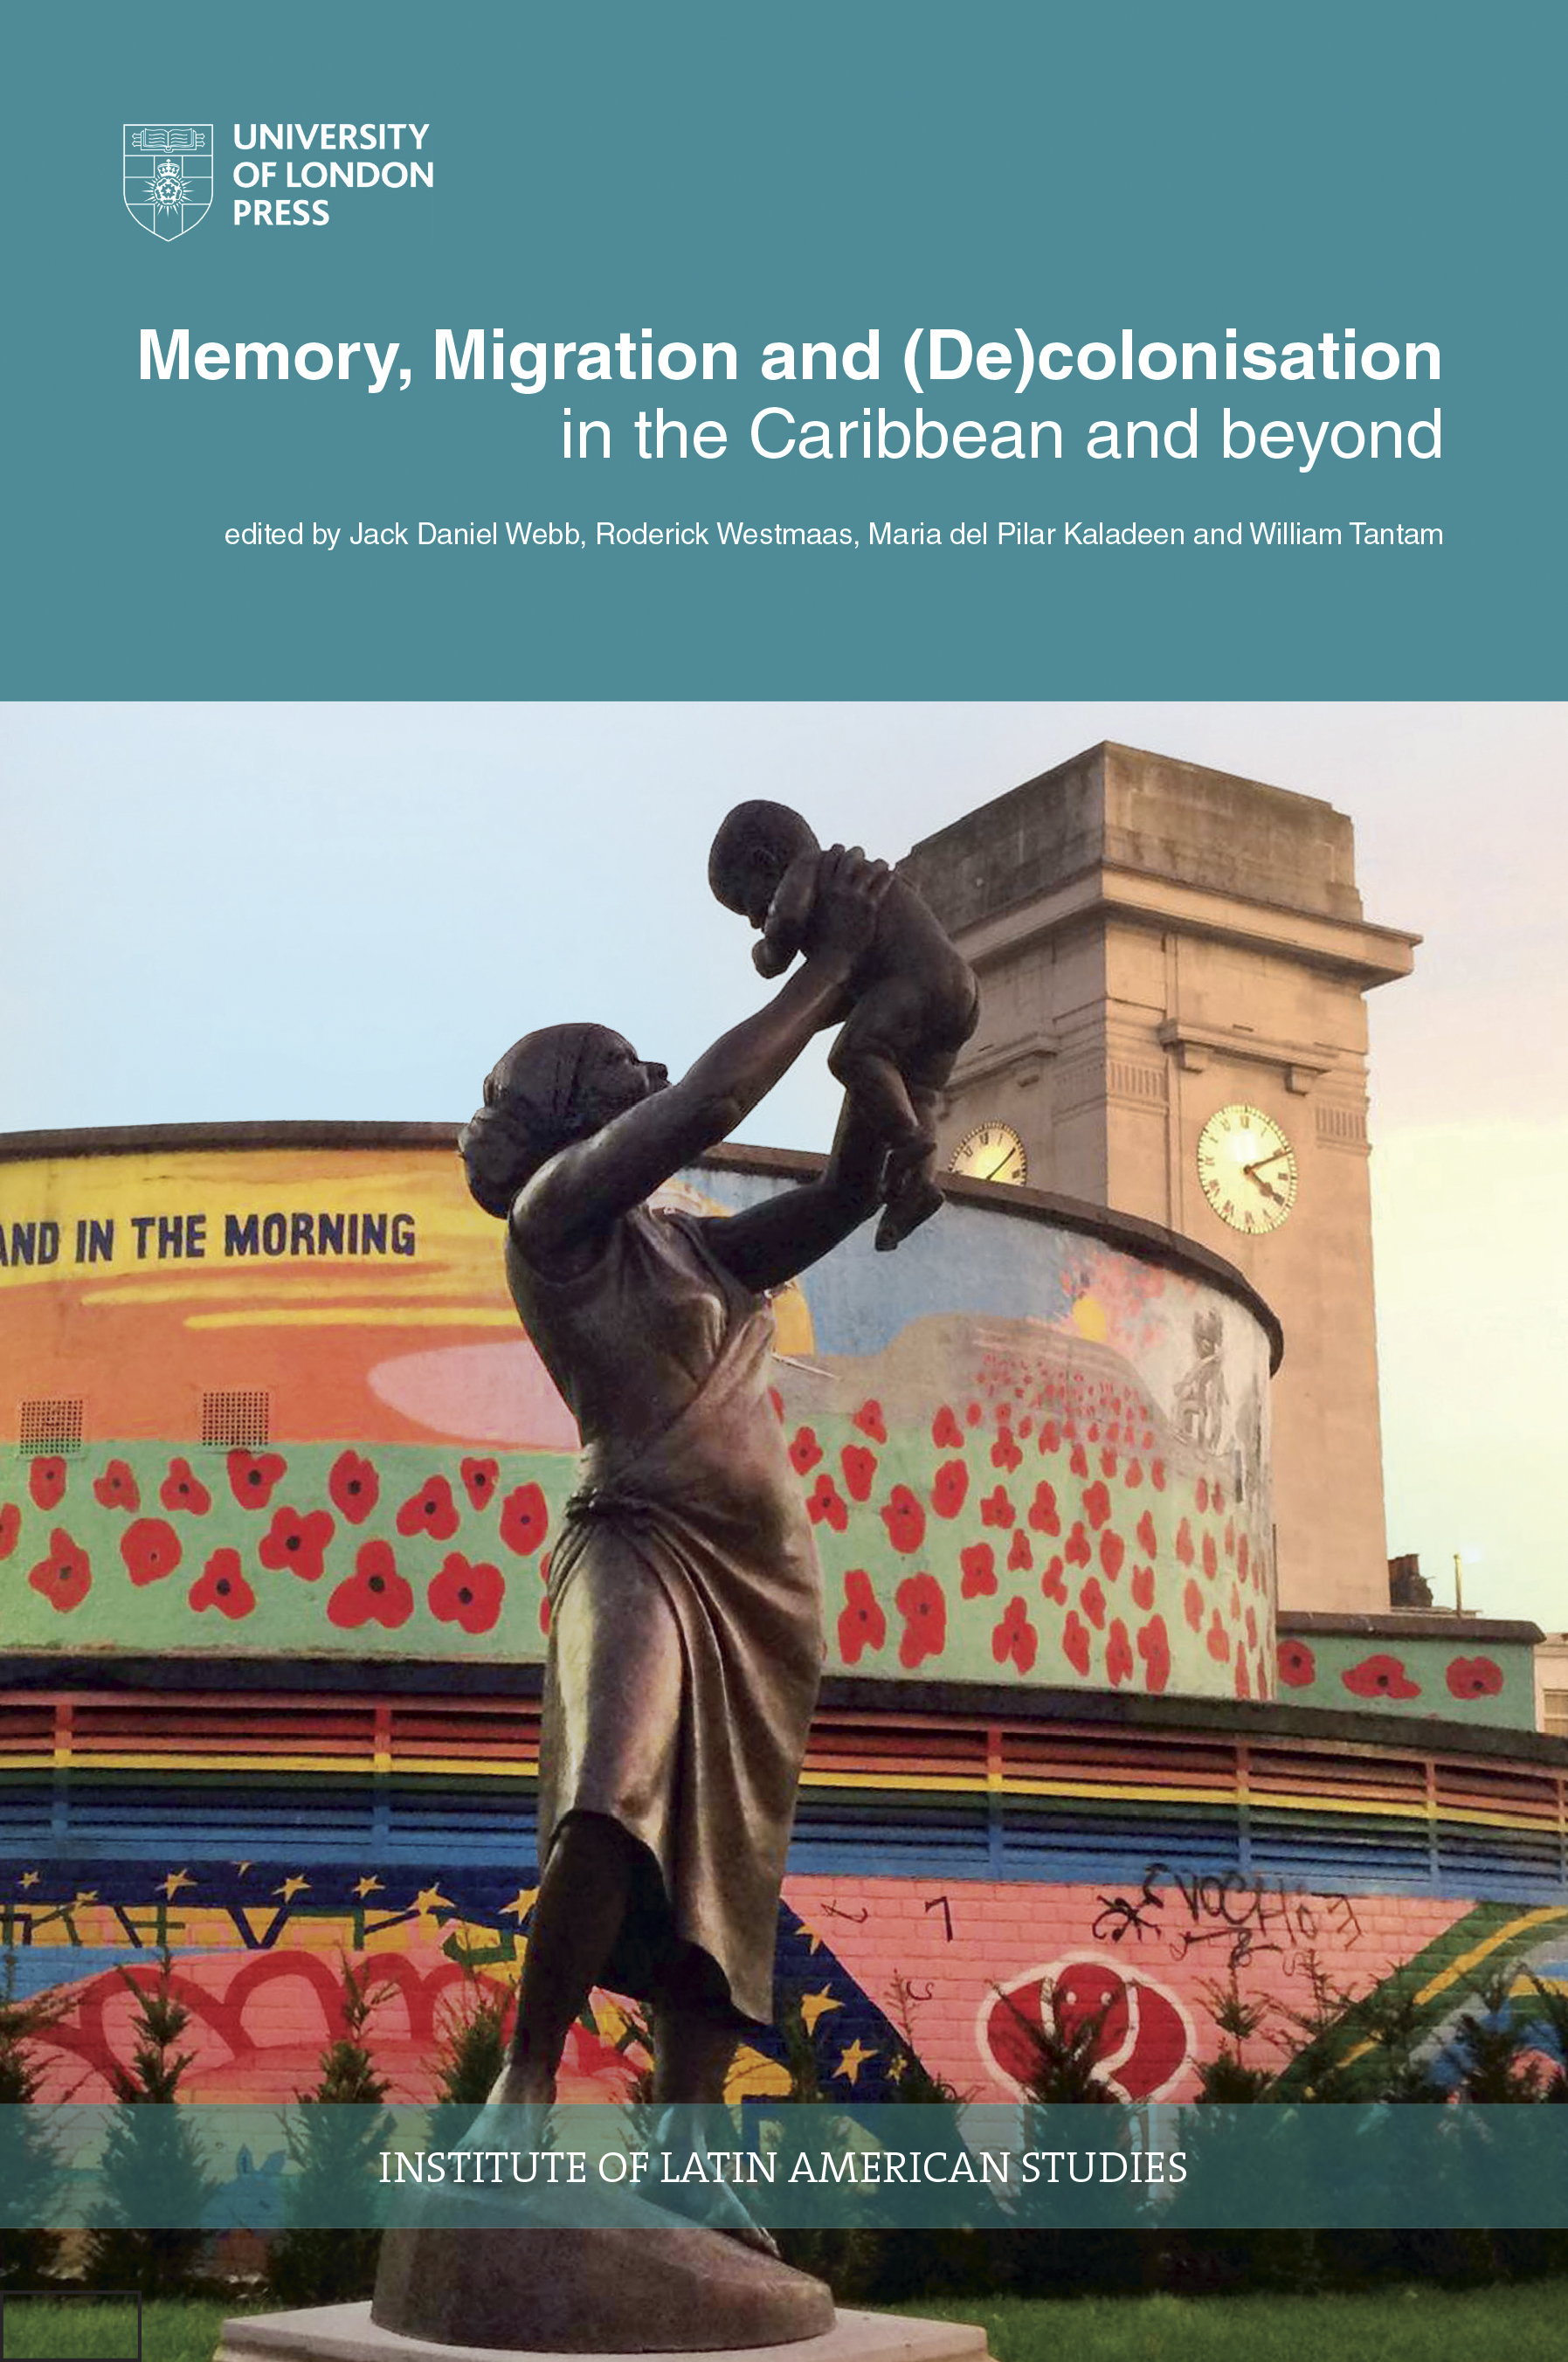 Memory, migration and (de)colonisation in the Caribbean and beyond